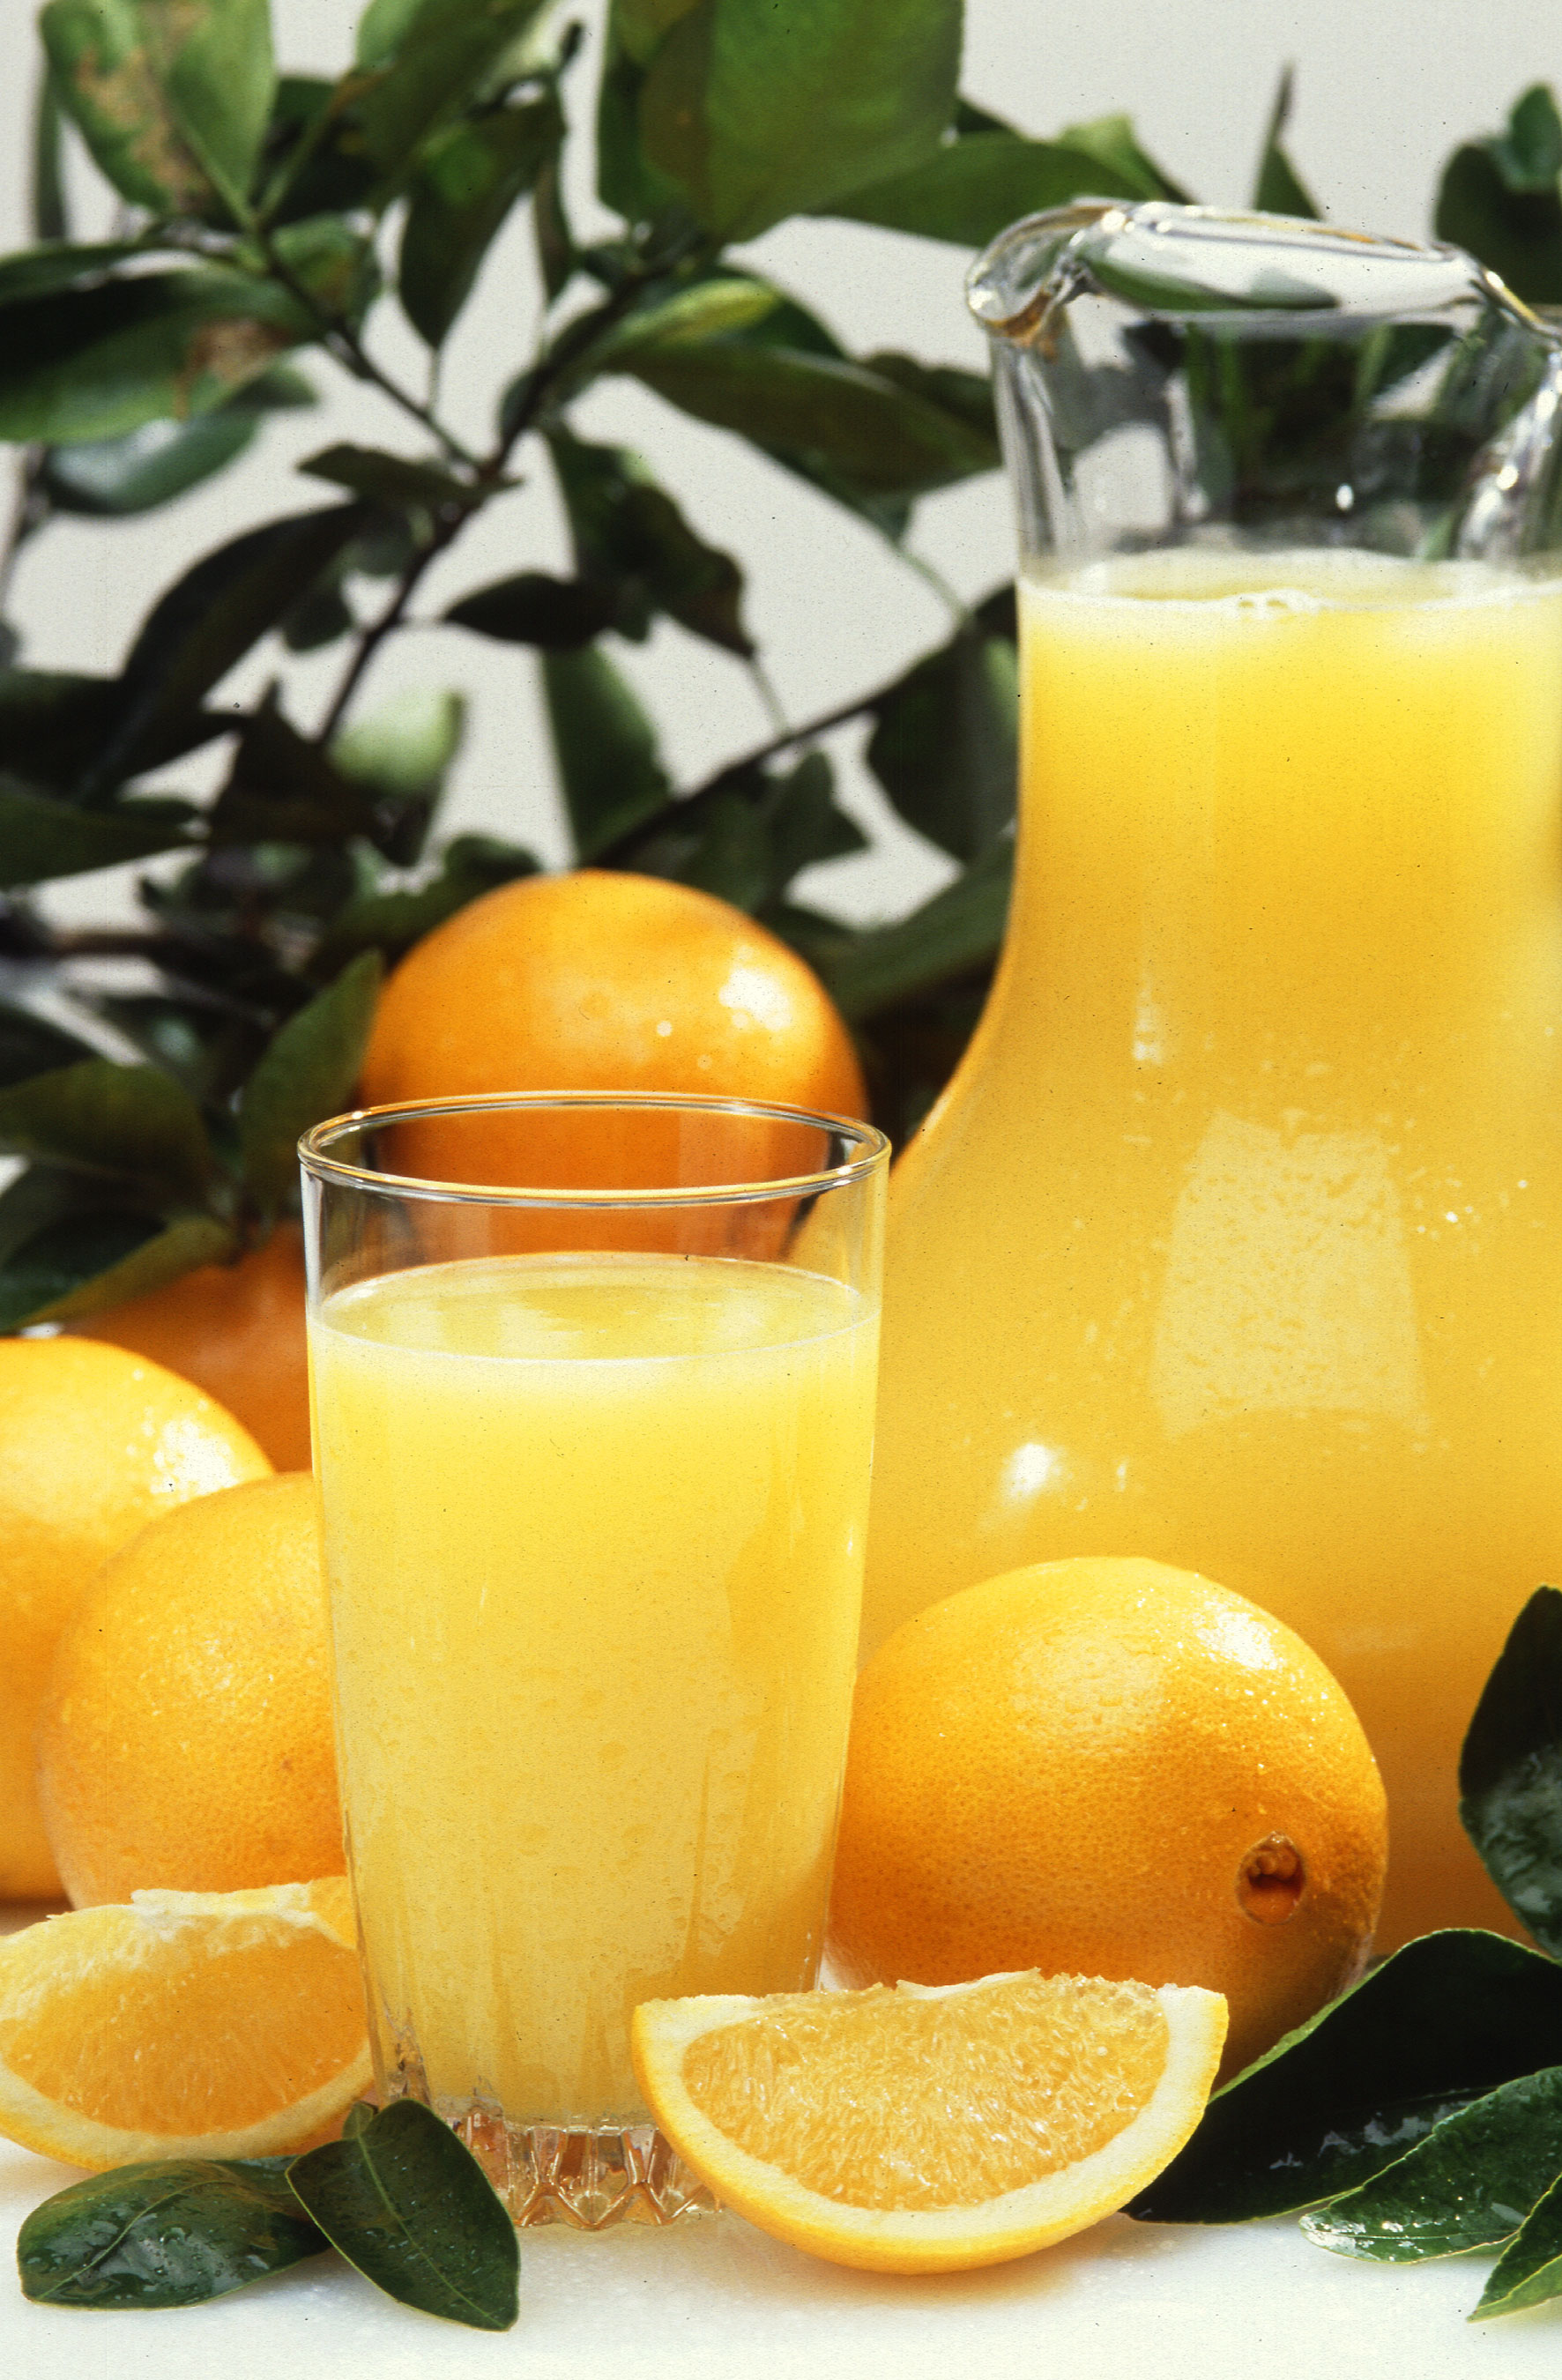 File:Oranges and ORANGE JUICE.jpg - Wikipedia, the free encyclopedia